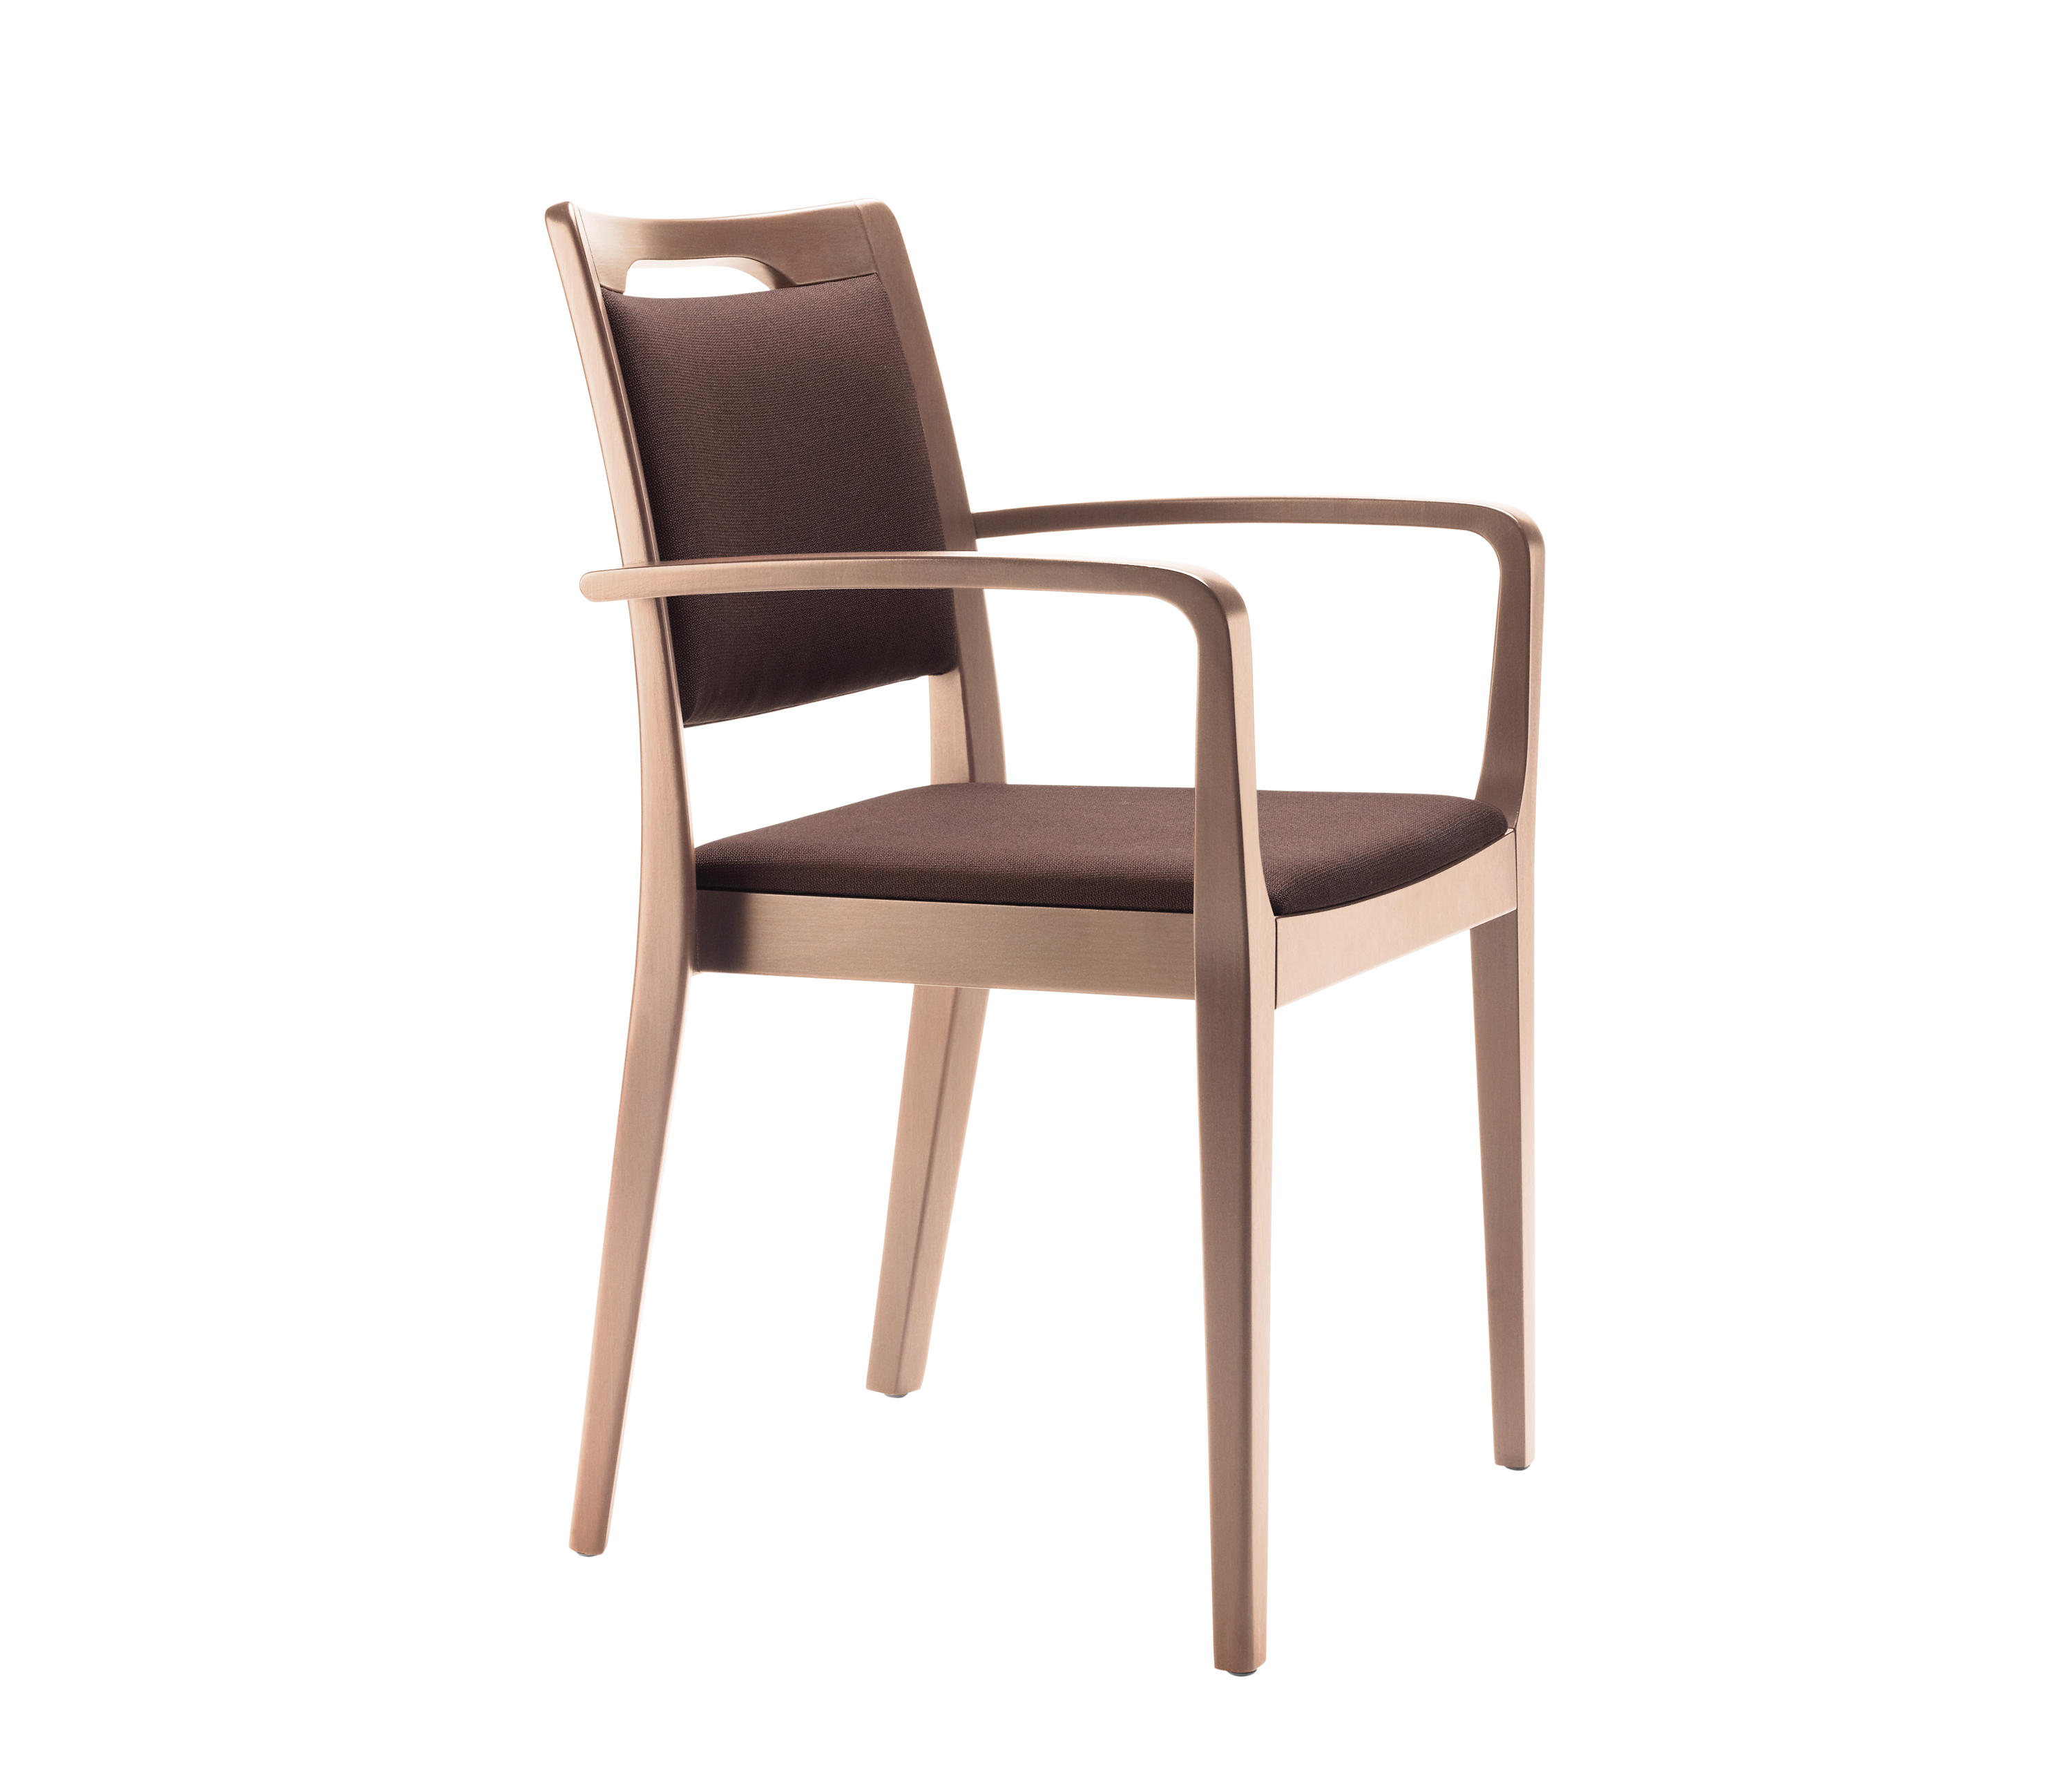 elderly chairs all weather outdoor dining kiva chair care dietiker architonic